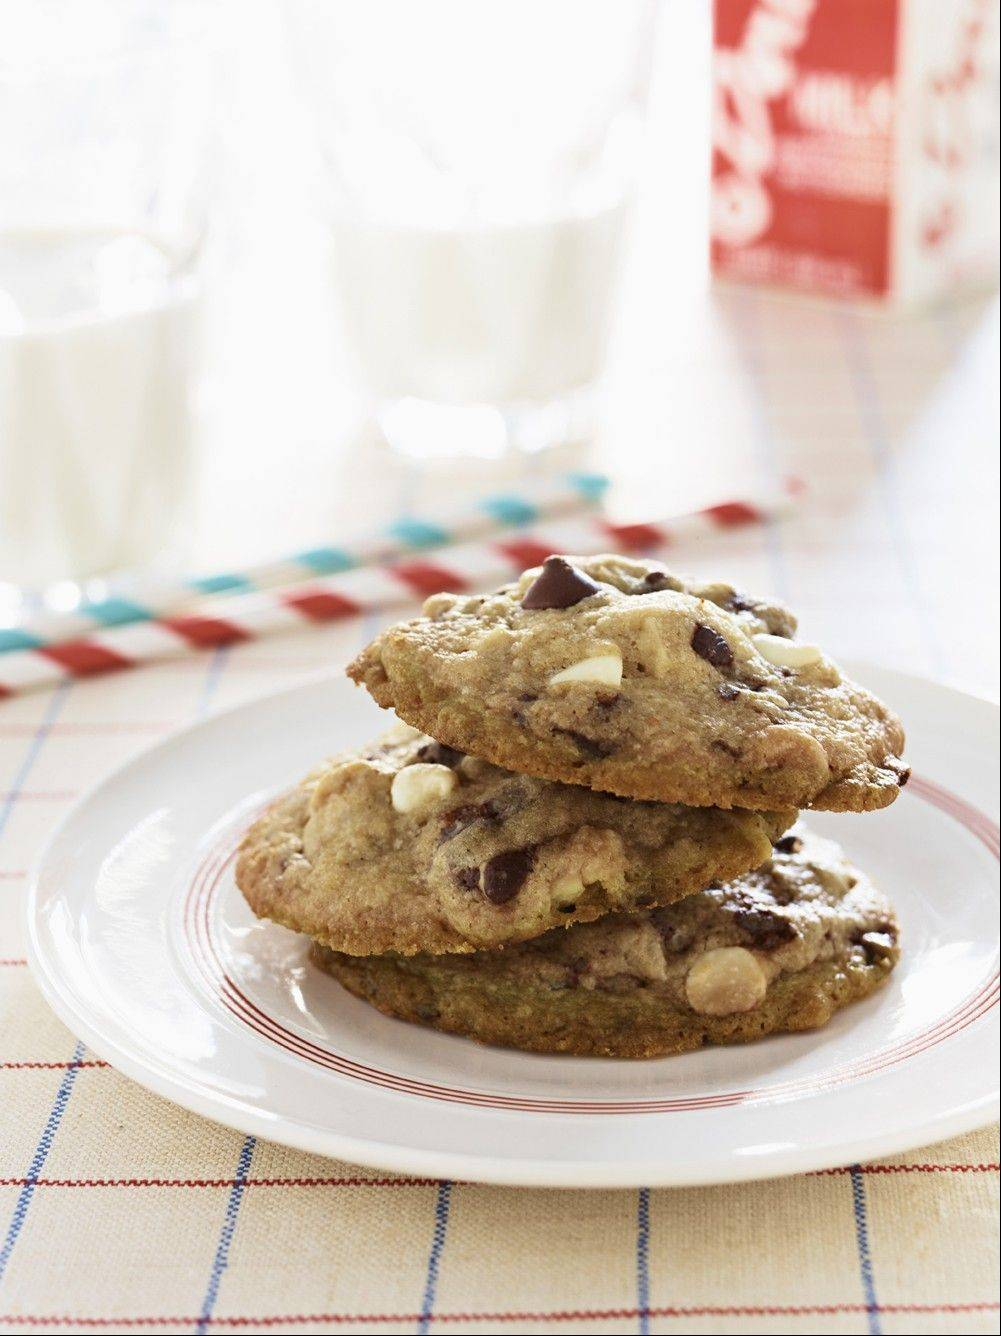 first lady Michelle Obama's Mama Kaye's White and Dark Chocolate Chip Cookies